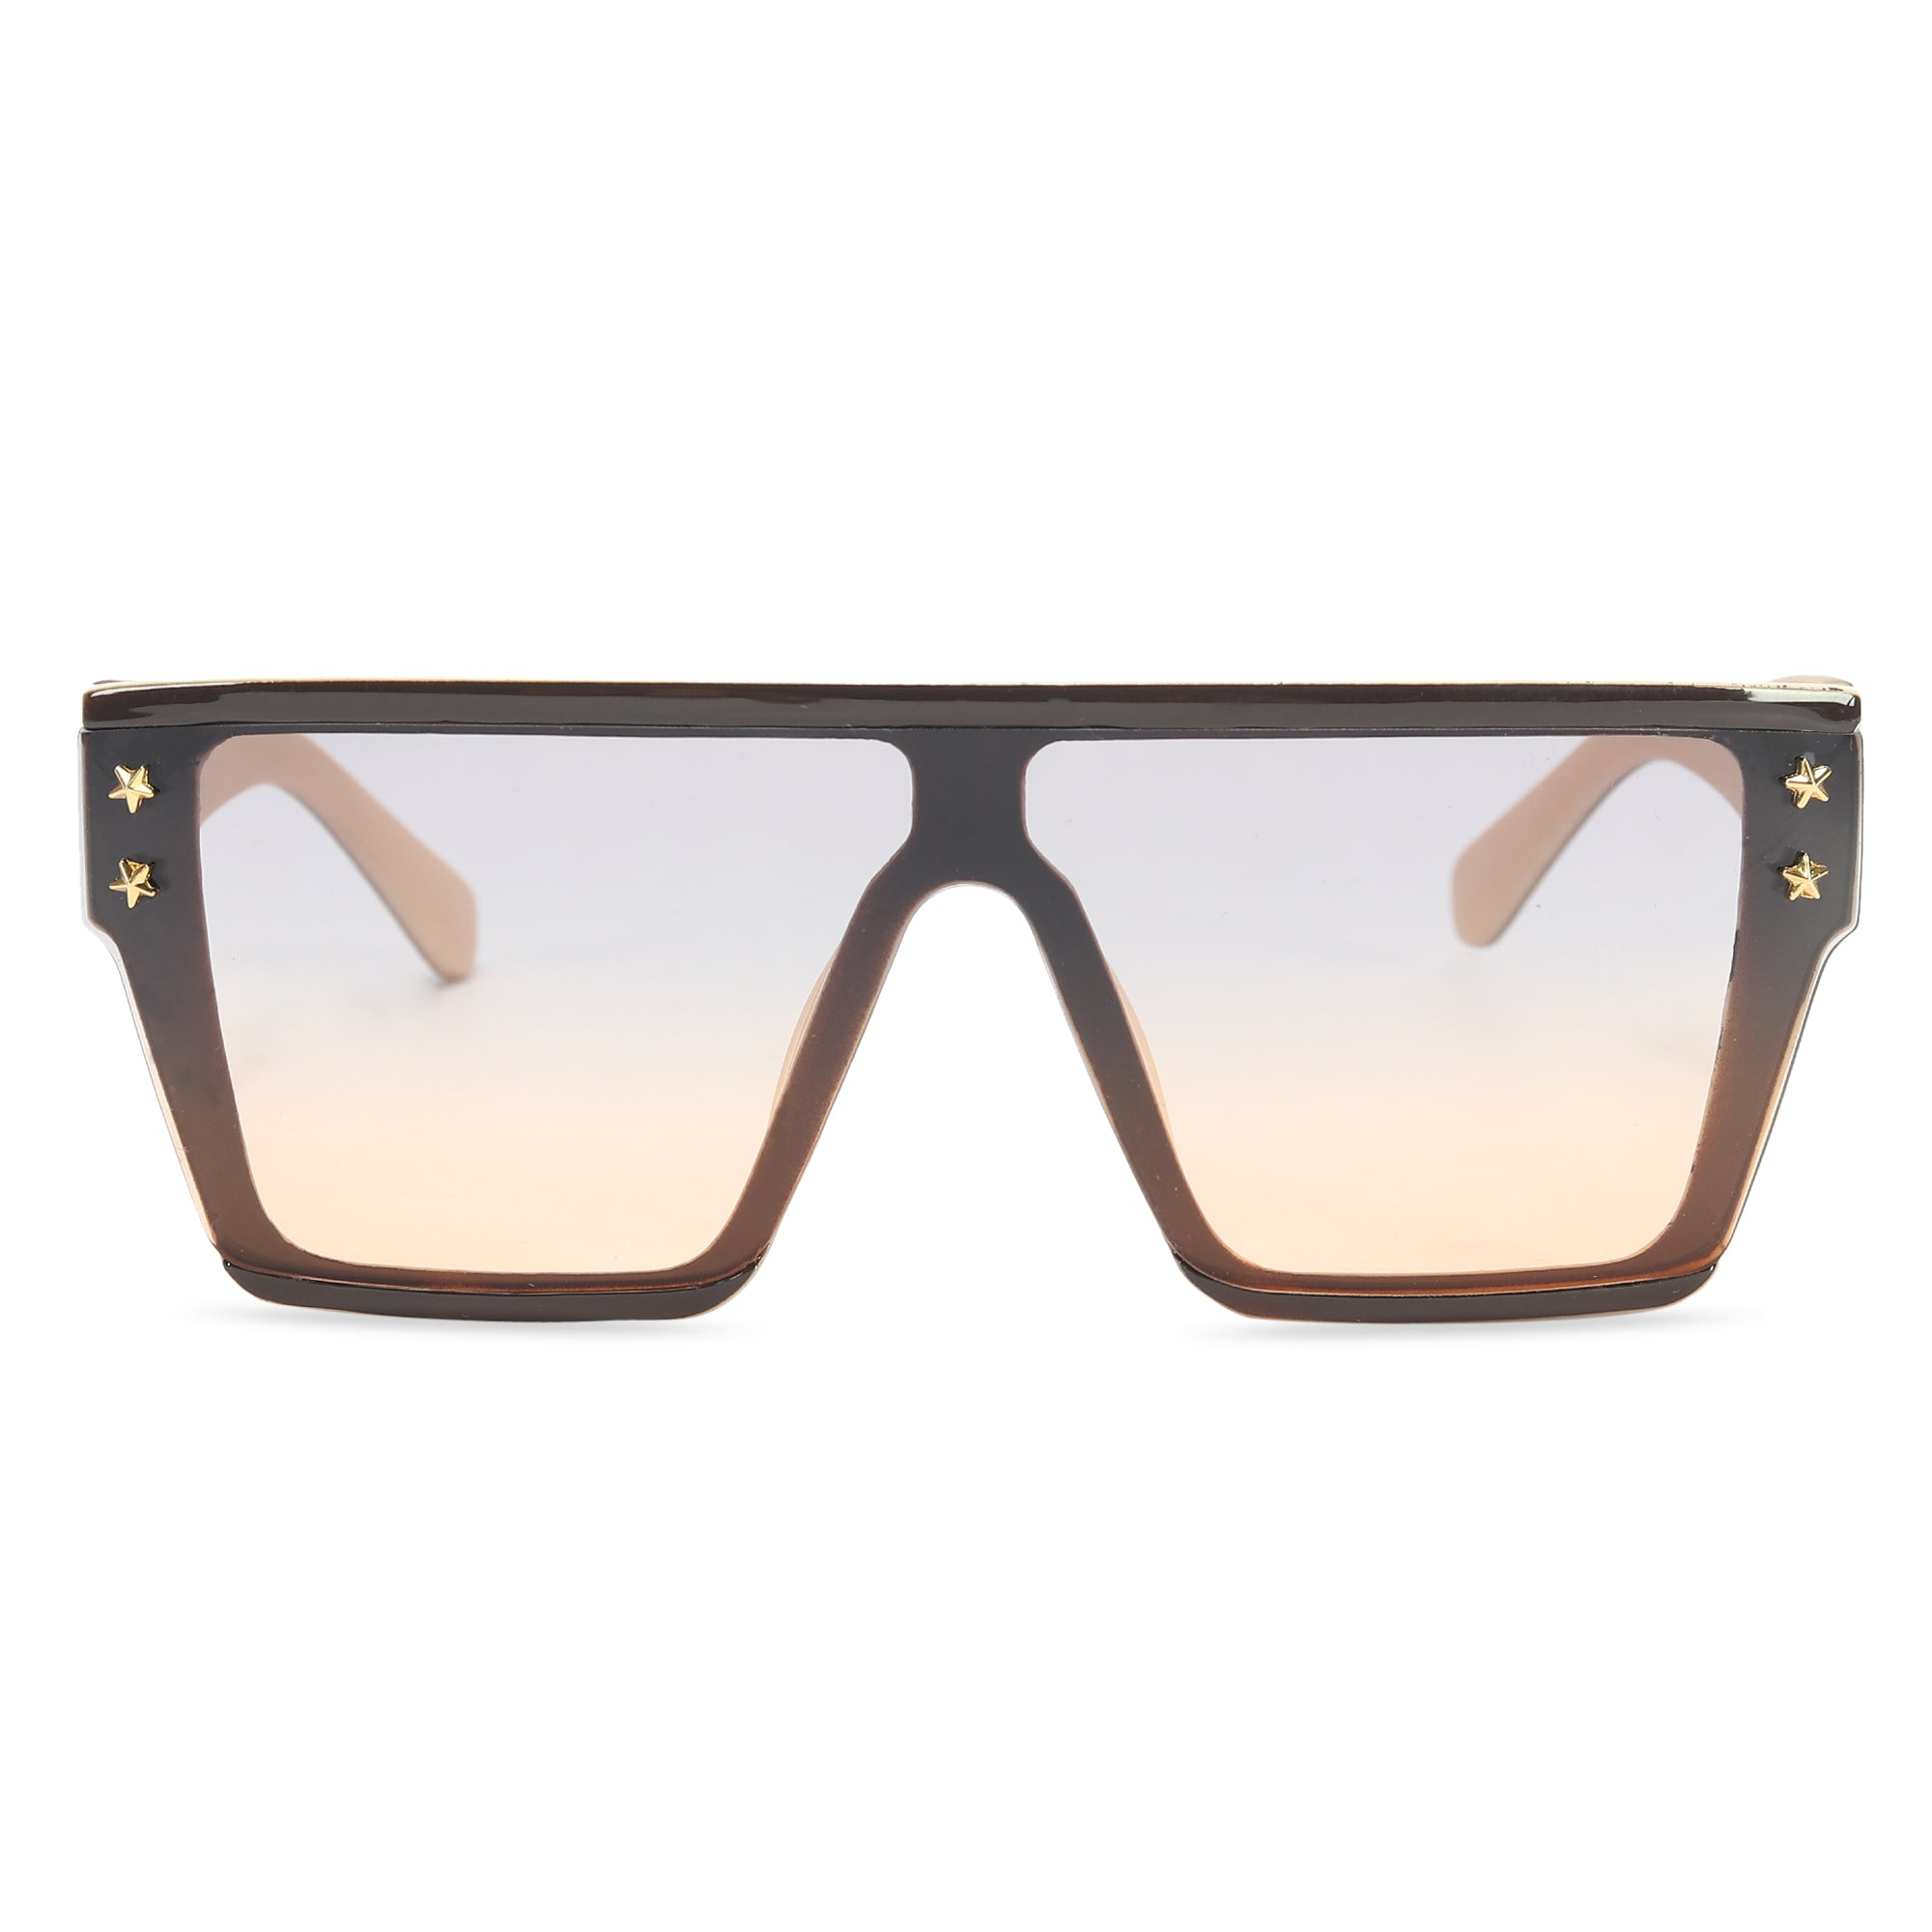 HL Sunberry Ghosted Glasses